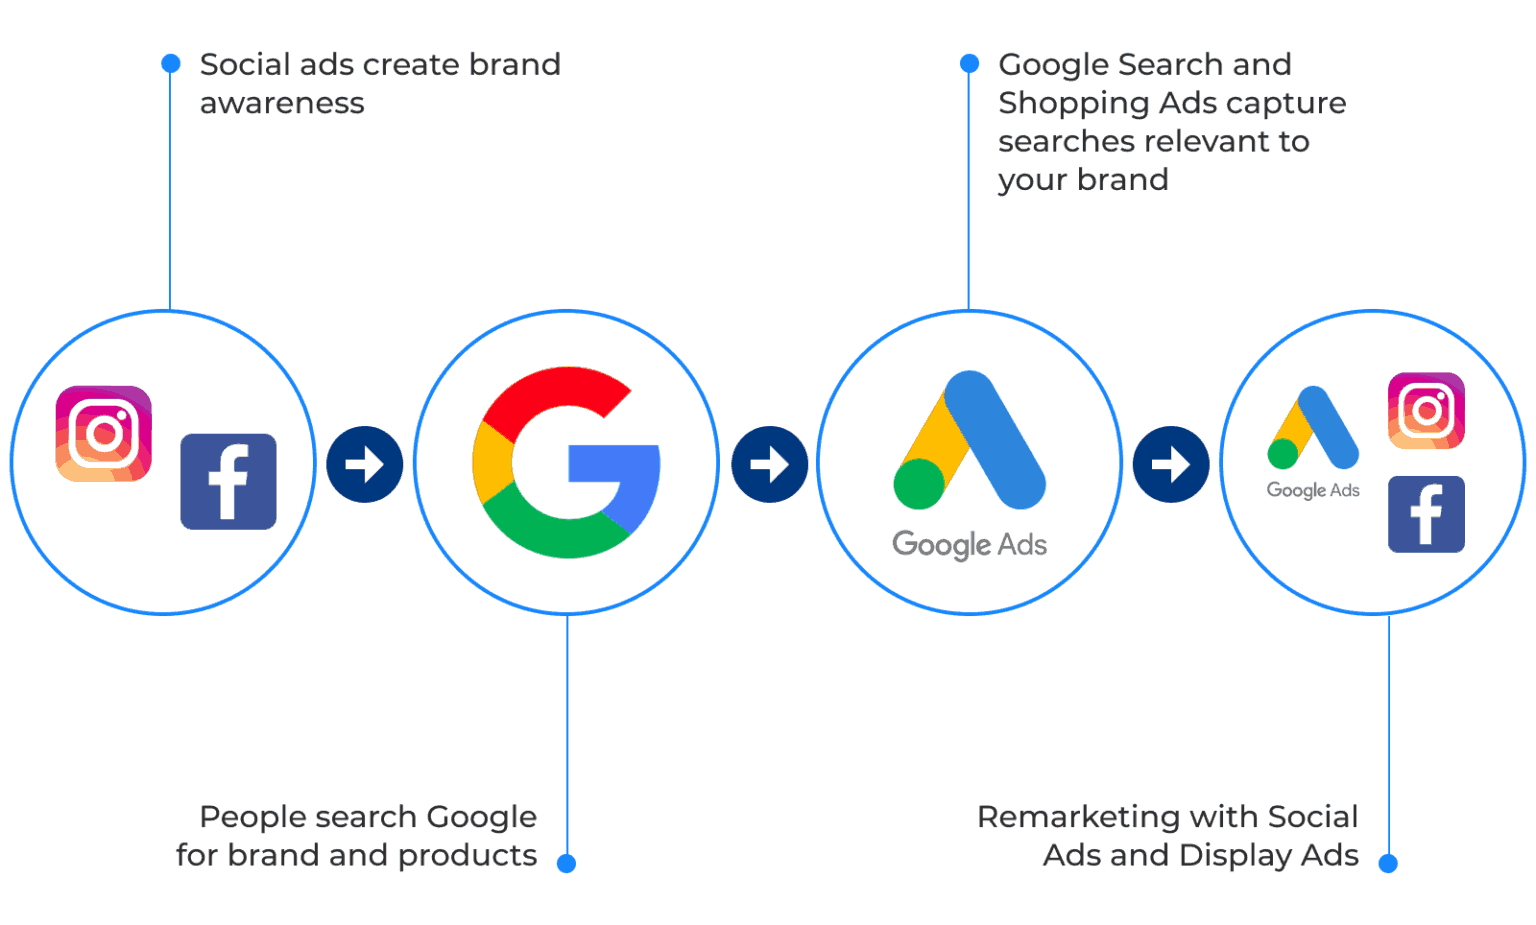 Social ads create brand awareness; People search Google for brand and products; Google Search and Shopping Ads capture searches relevant to your brand; Remarketing with Social Ads and Display Ads